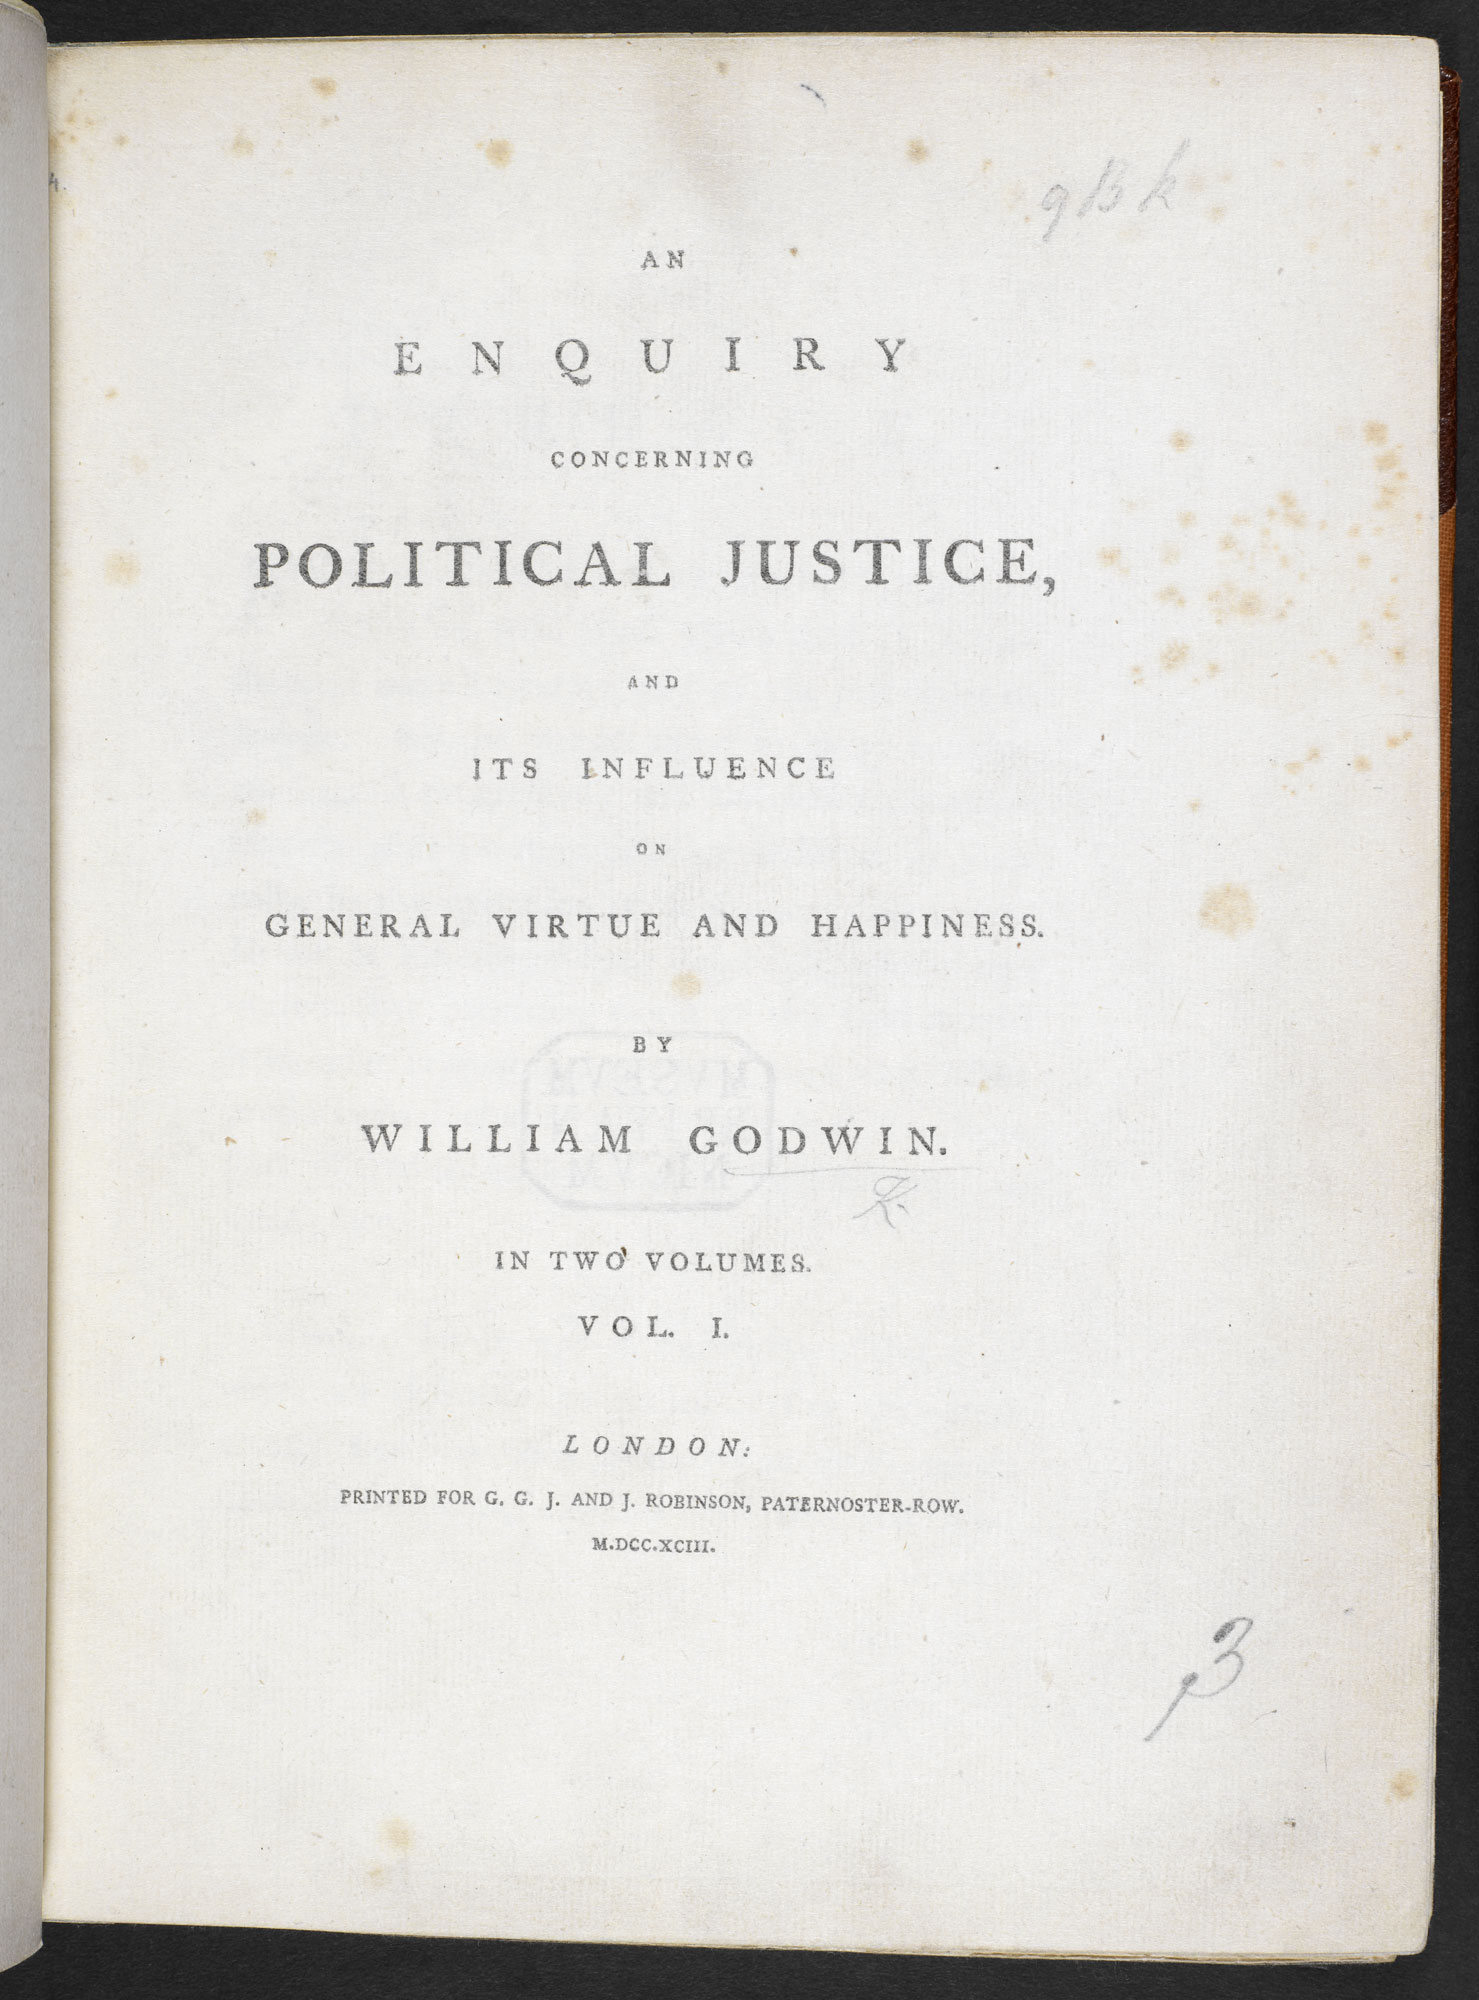 An Enquiry concerning Political Justice